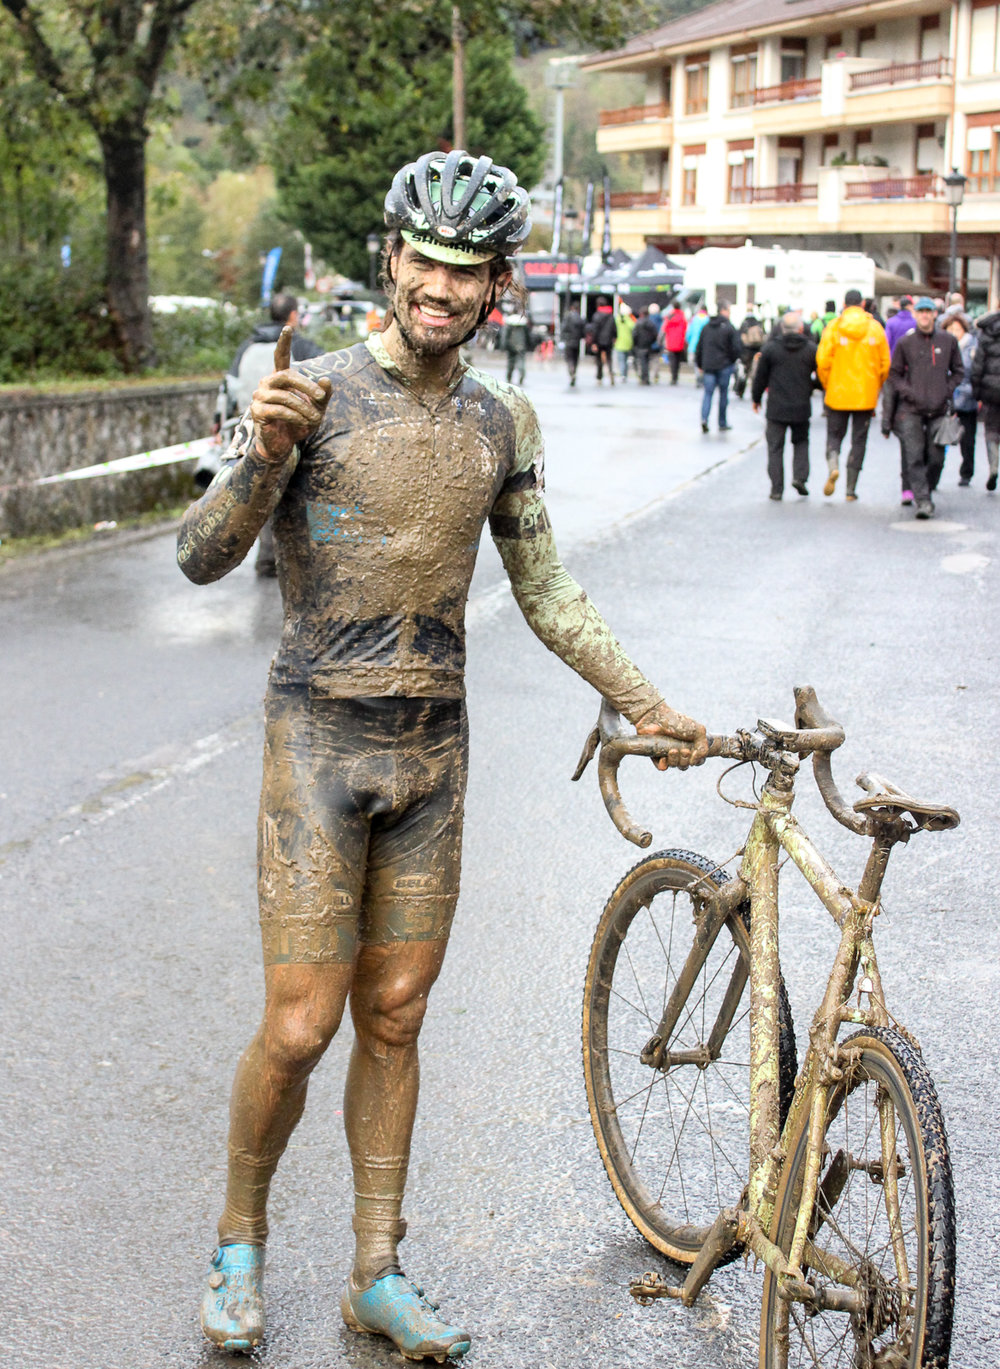 We finally won something for getting down and dirty with our reporting. Karrantza, Spain. Photo by Annick Lamb